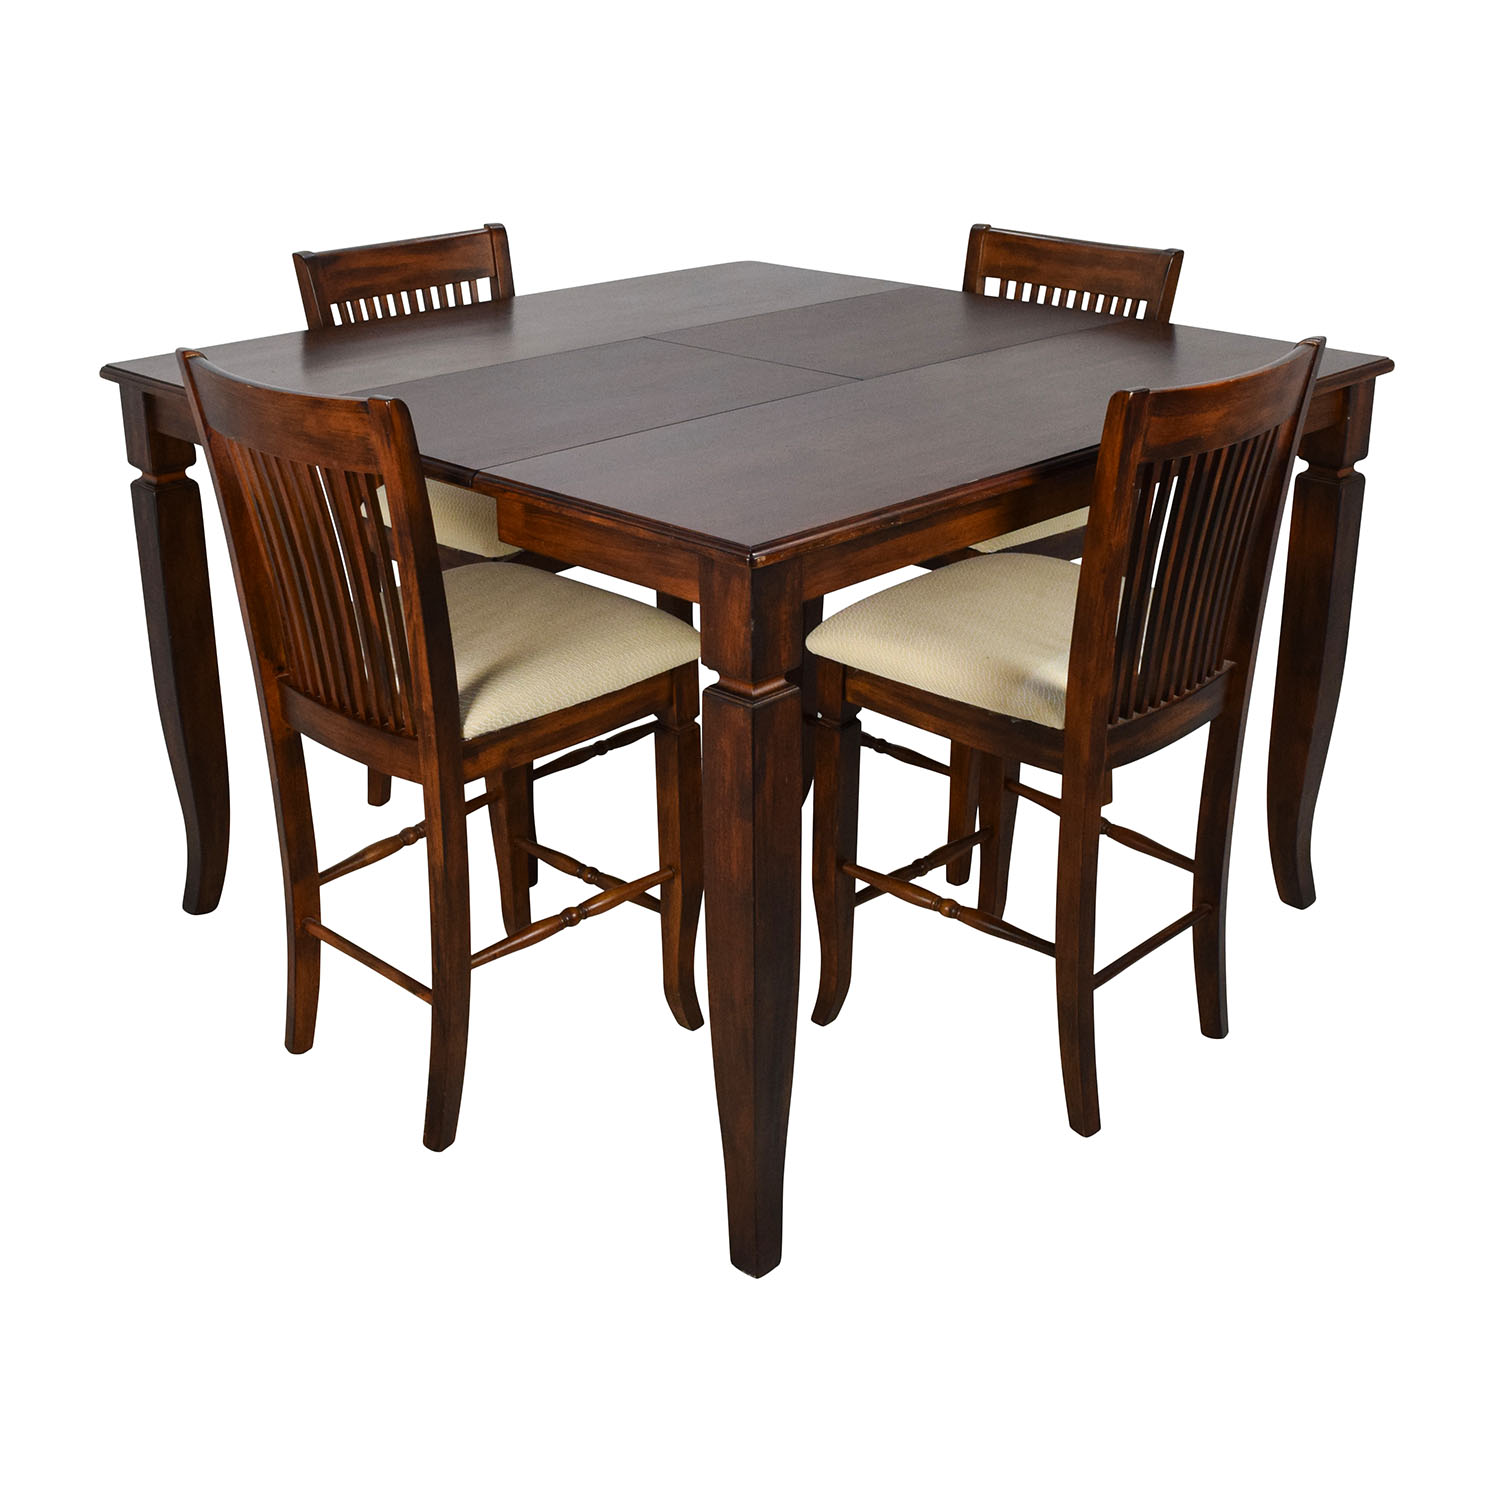 75 off tall extendable dining room table set tables for Tall dinner table set